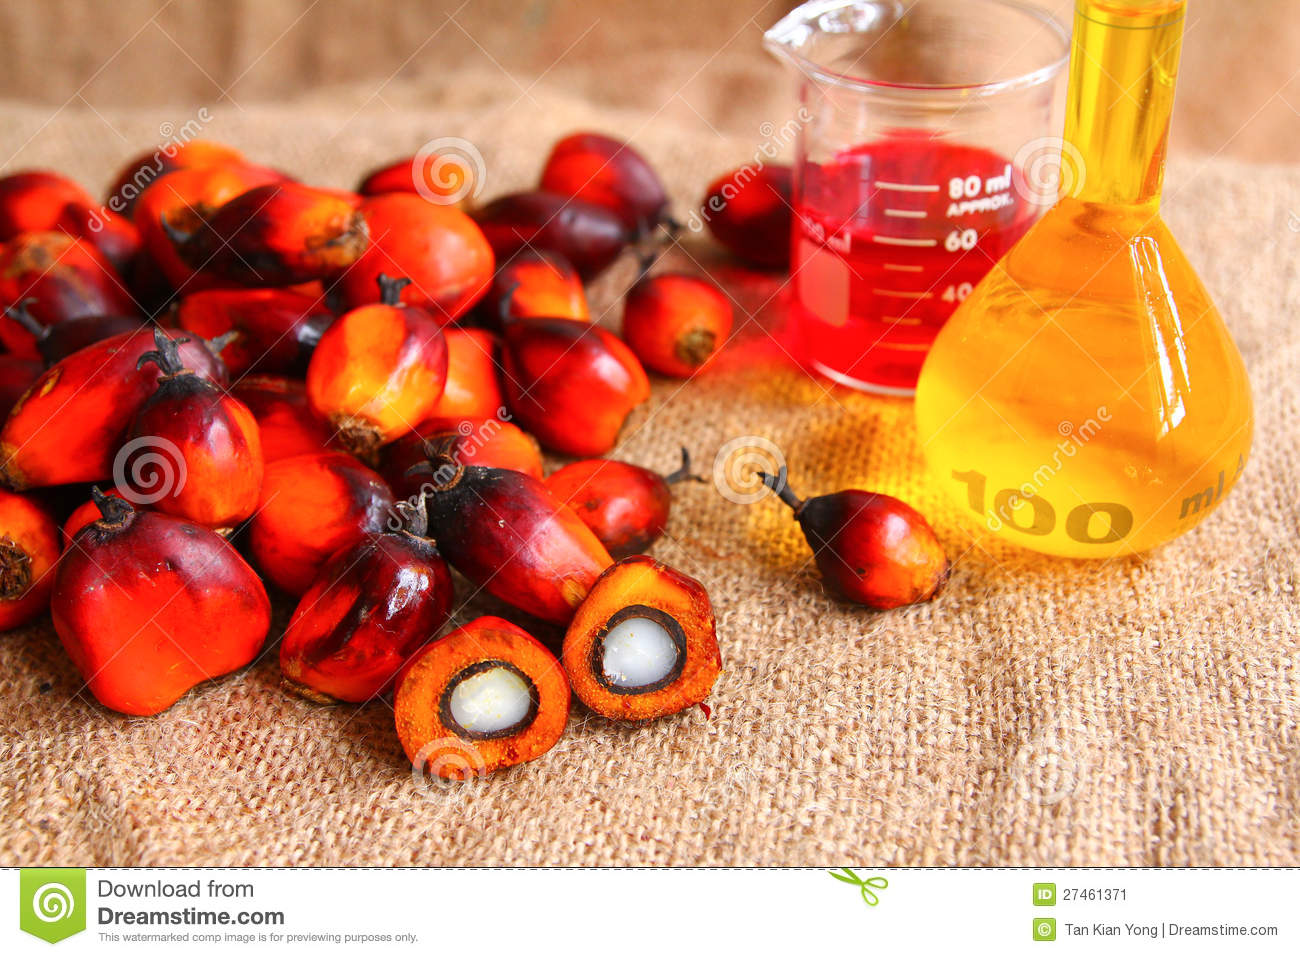 Oil Palm Fruits With Palm Oil Stock Image - Image: 27461371